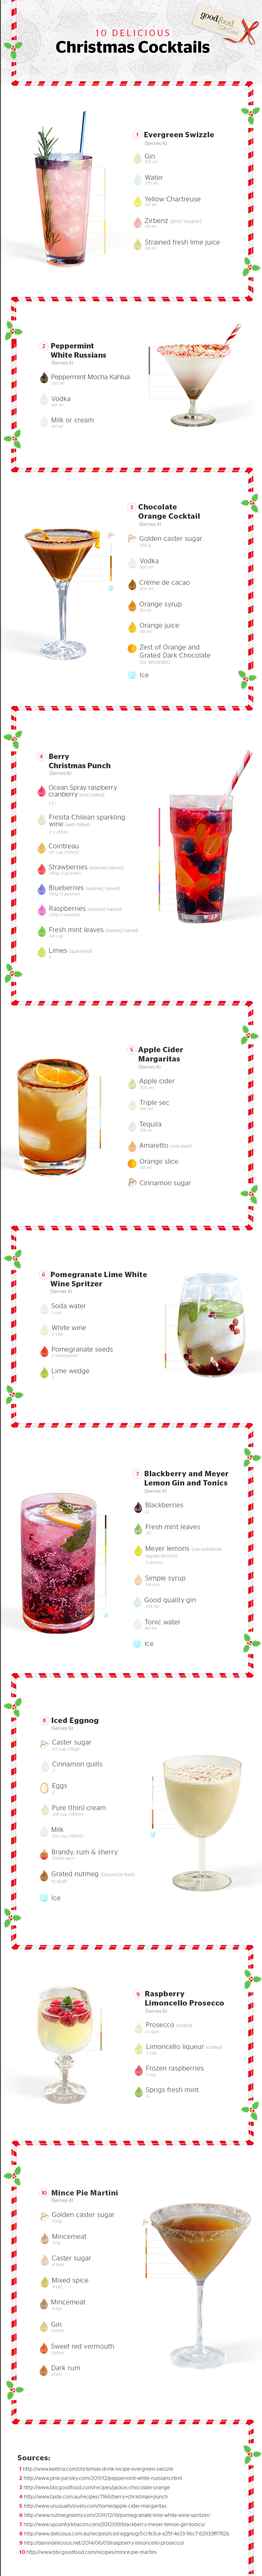 10 Delicious Christmas Cocktails